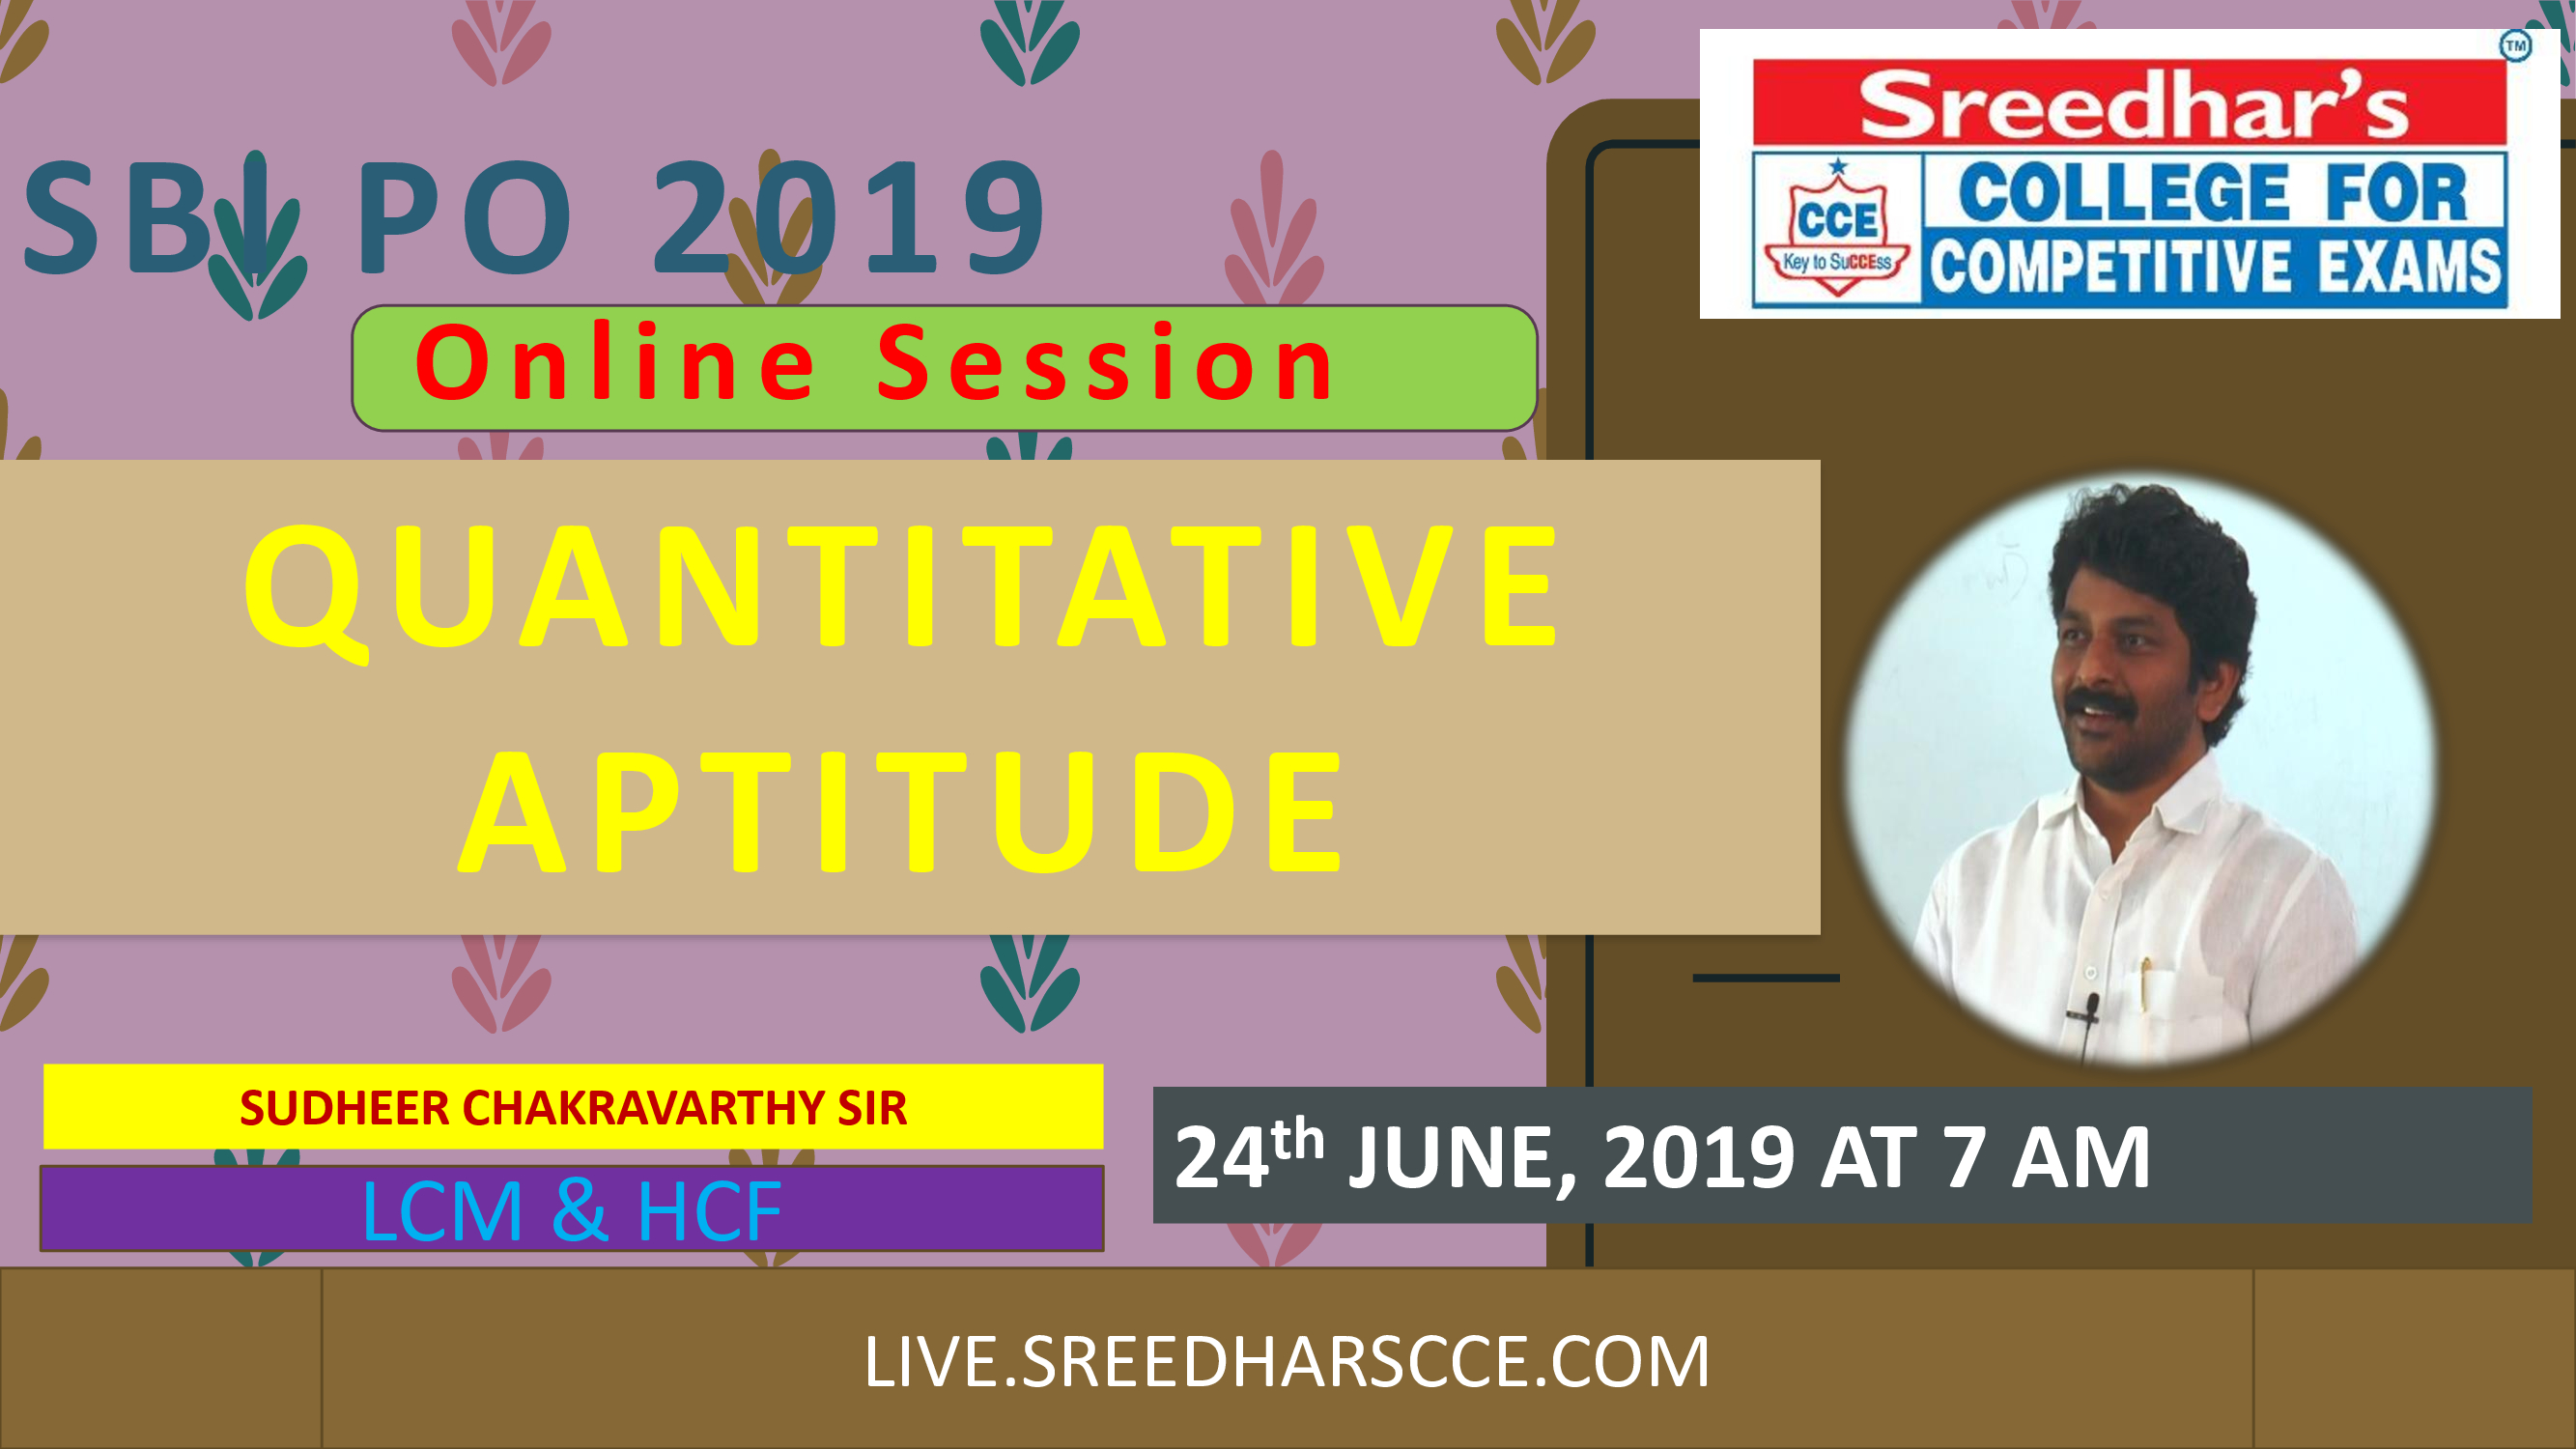 Class Session 22 Quantitative Aptitude | By Sudheer Chakravarthy Sir (LCM & HCF)